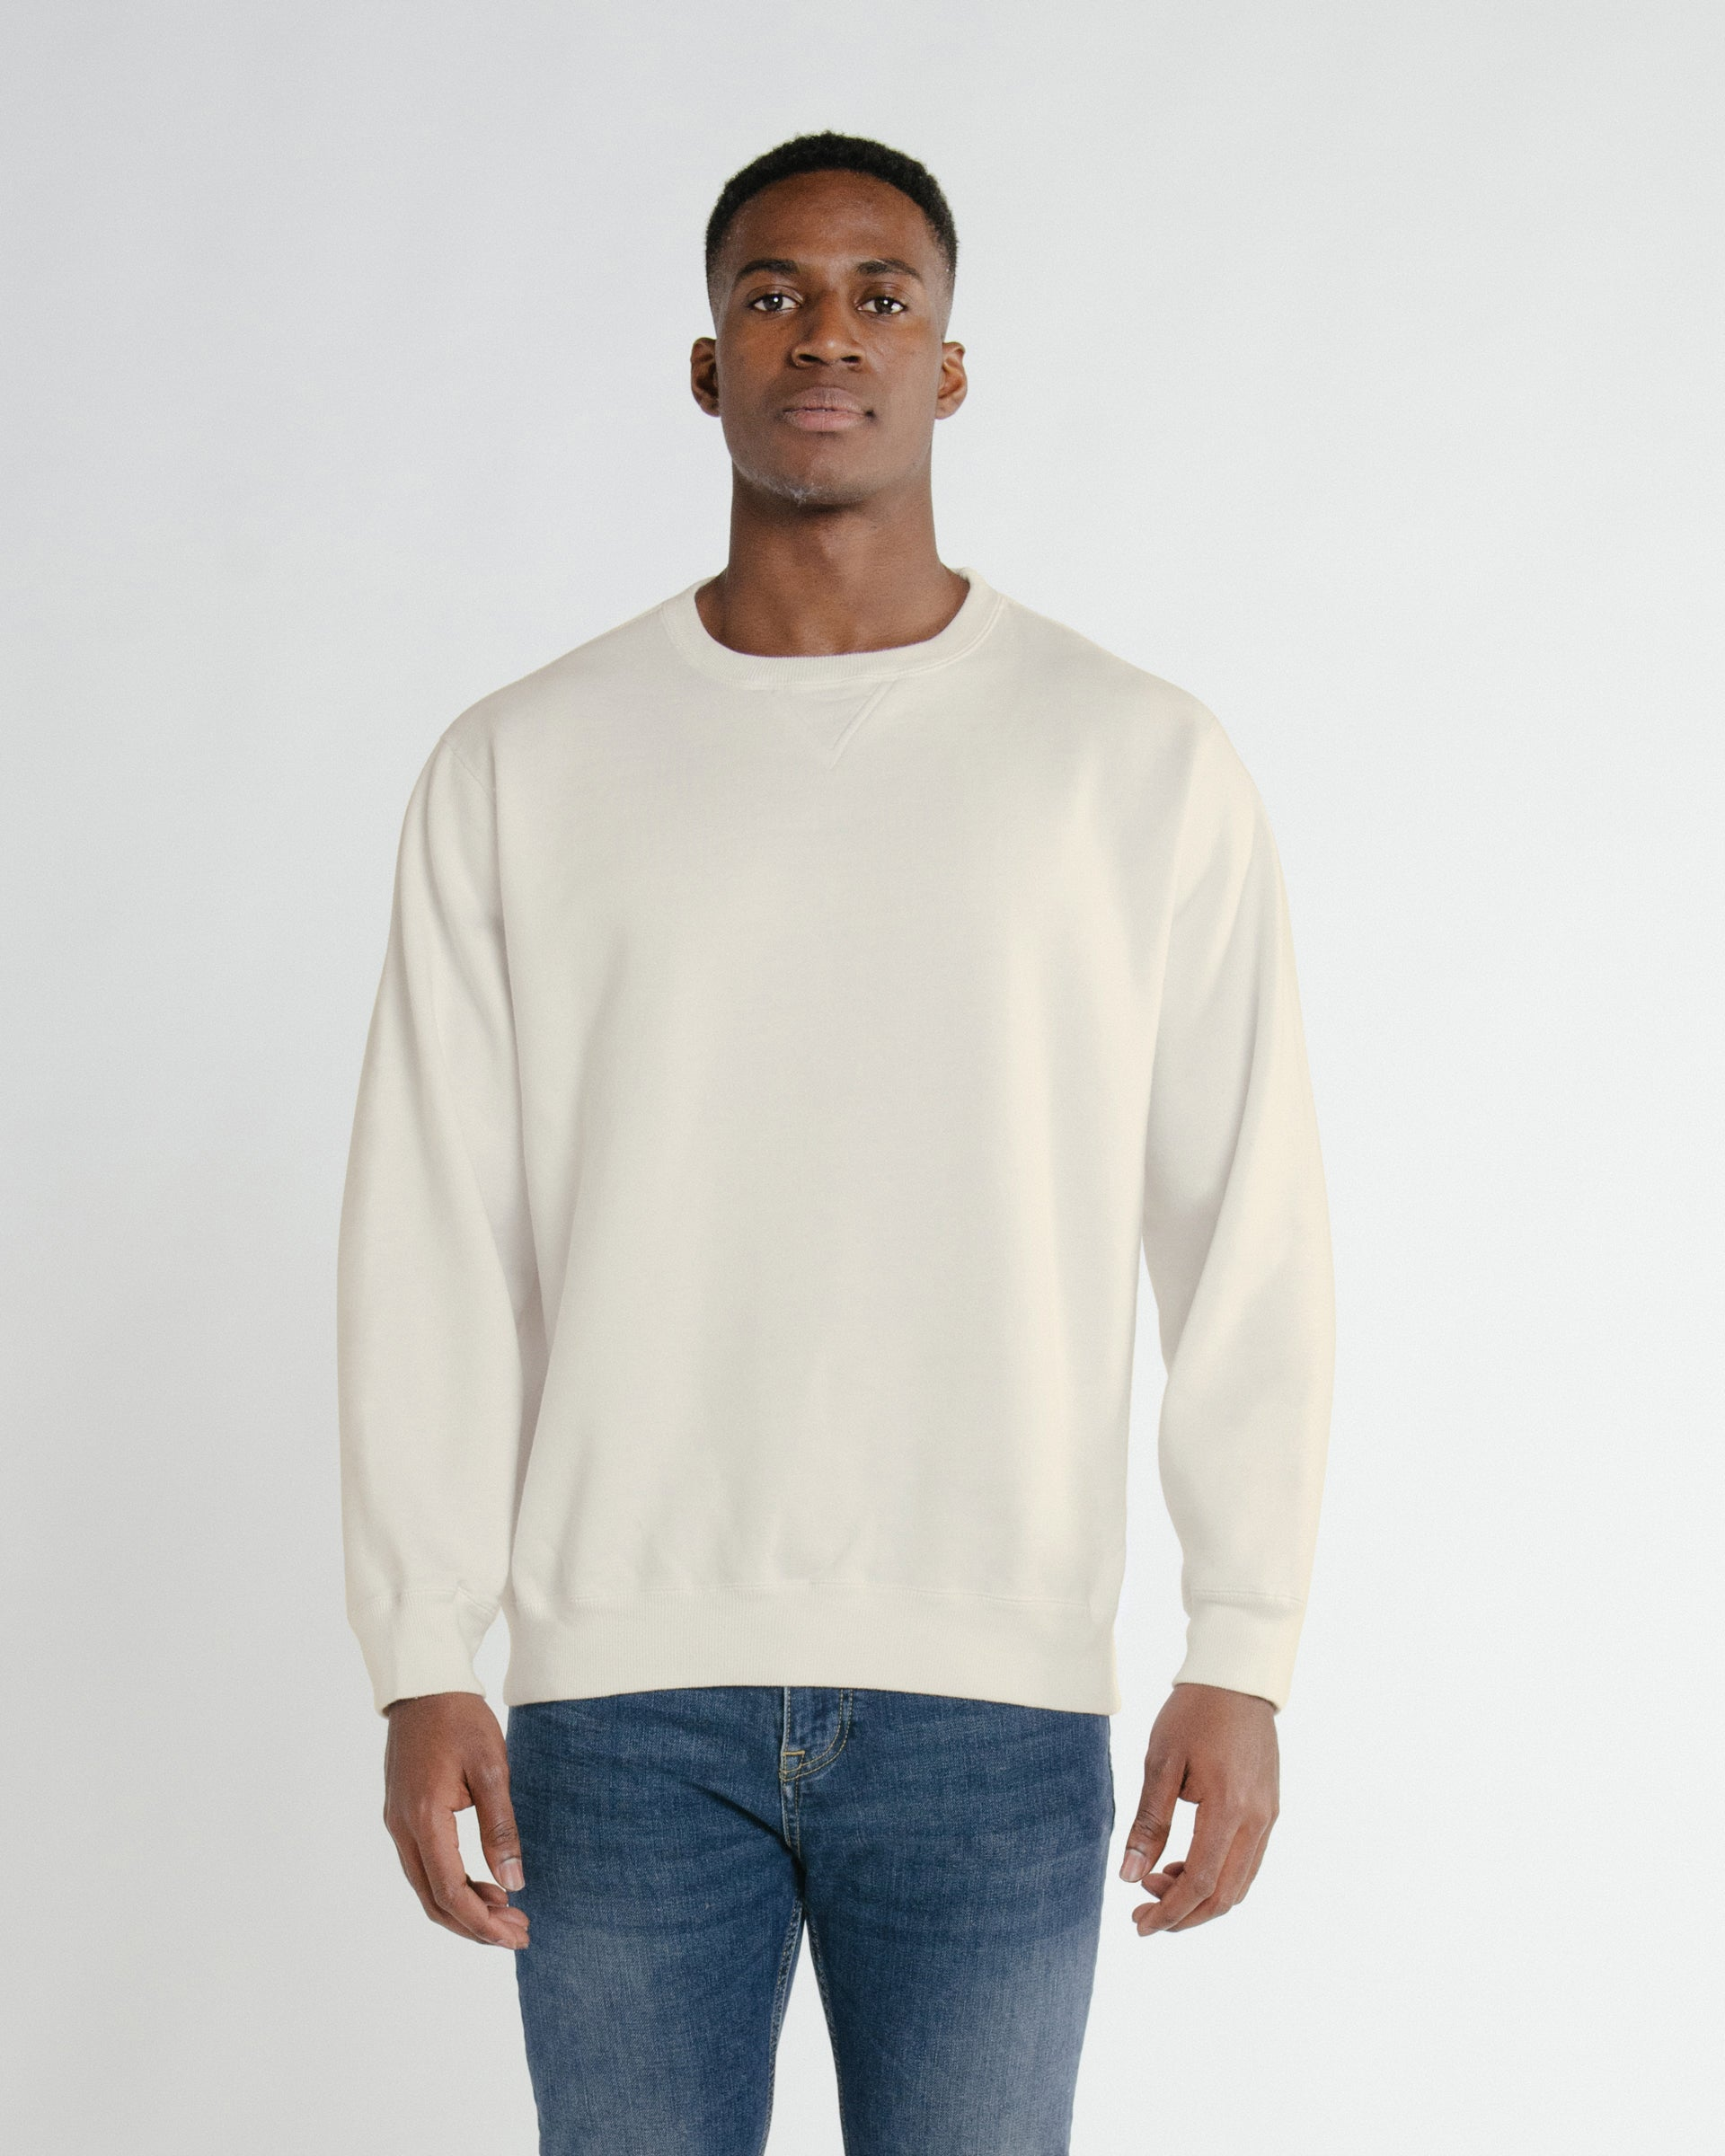 Northerner Crewneck - W1621